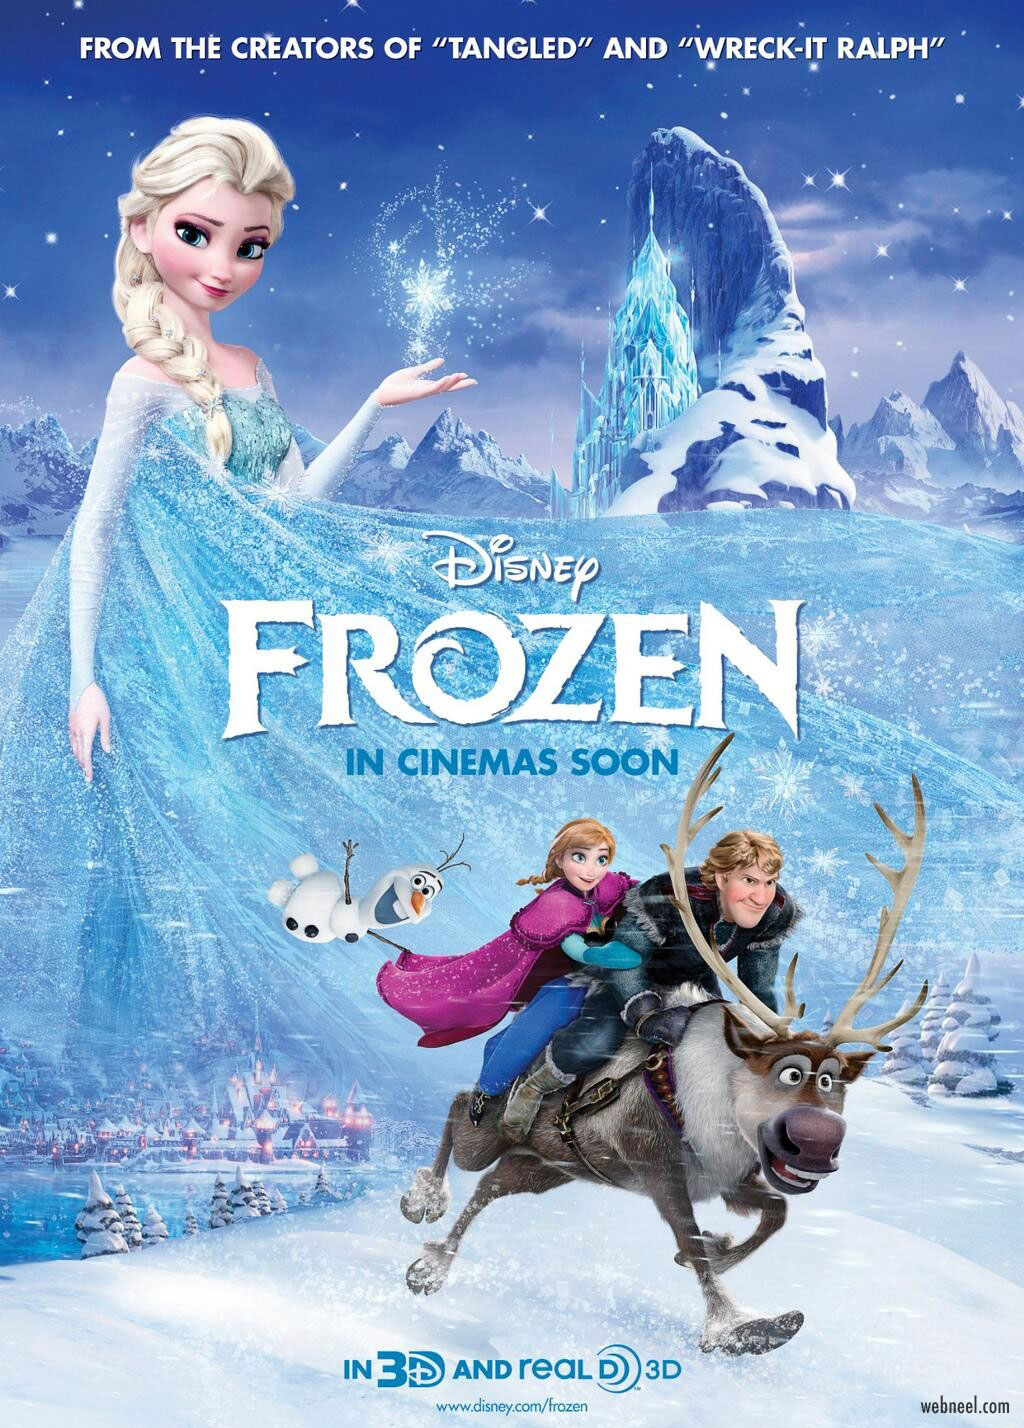 movie poster design frozen piqued